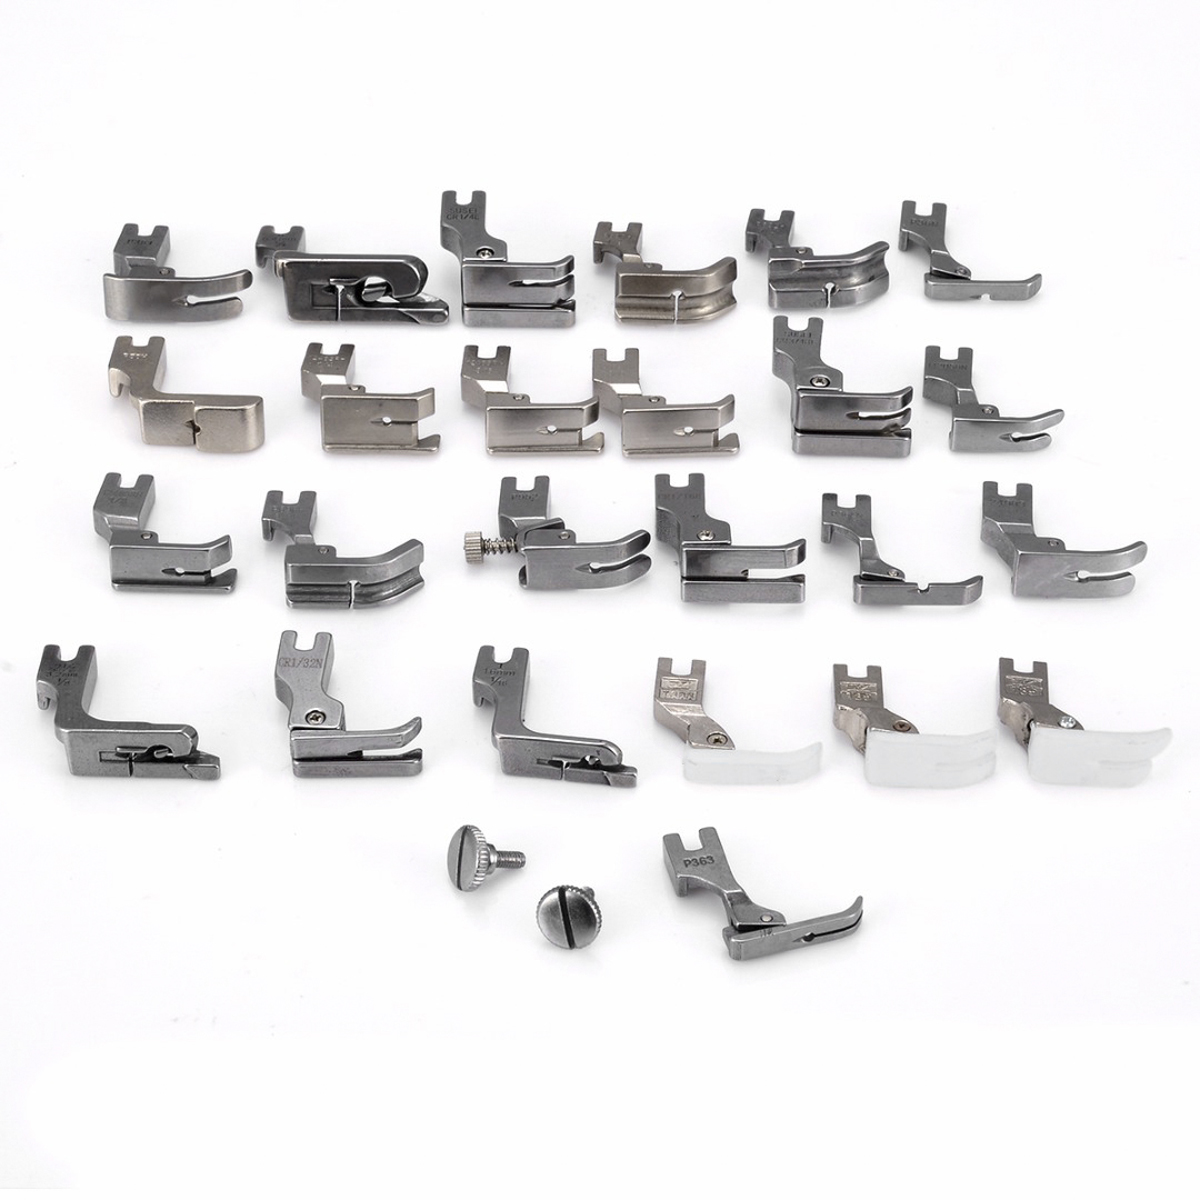 25Pcs Sewing Machine Presser Foot Feet Set for JUKI DDL-5550 8500 8700 Industrial Sewing Machine Household Tools